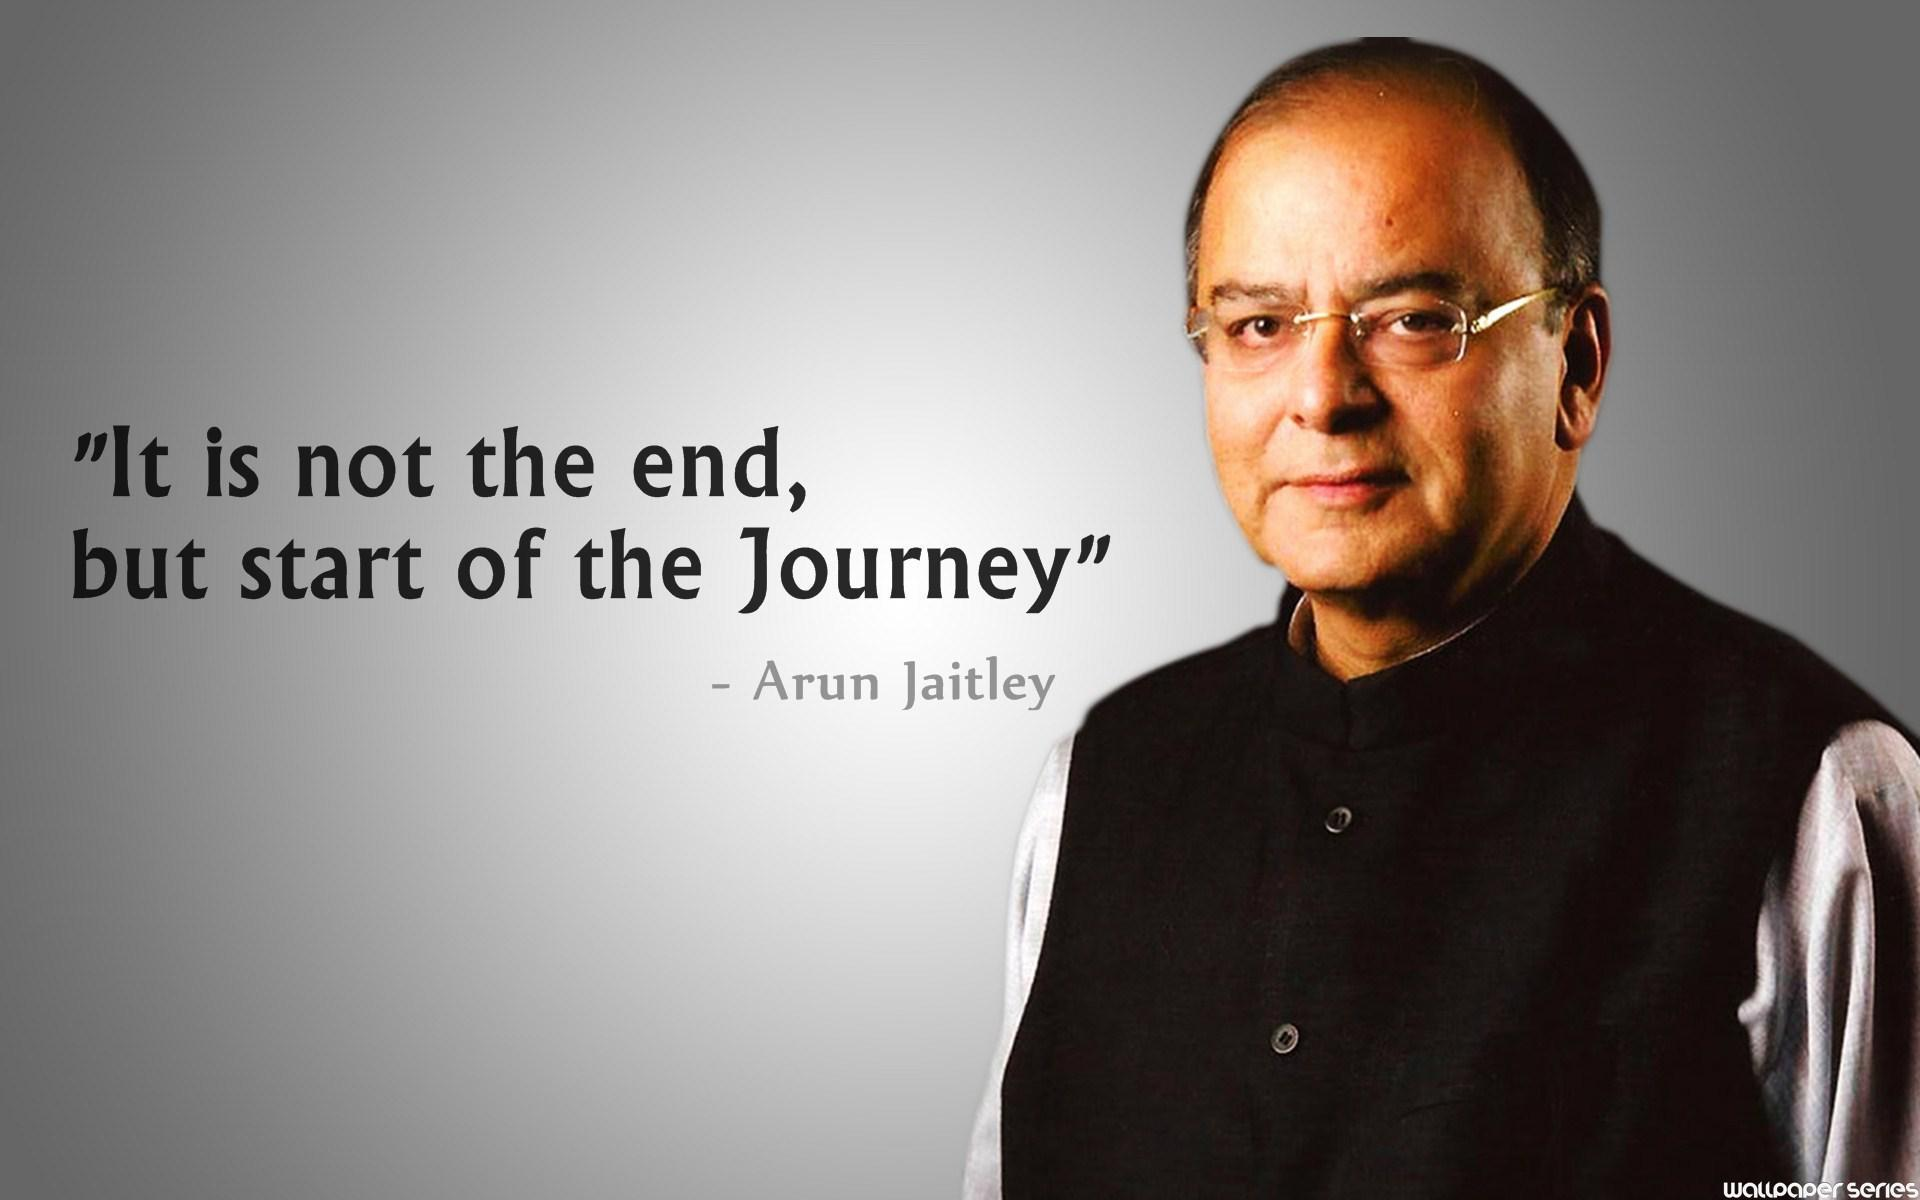 Arun Jaitley - Journey Quotes - Quotes Related To Gst , HD Wallpaper & Backgrounds